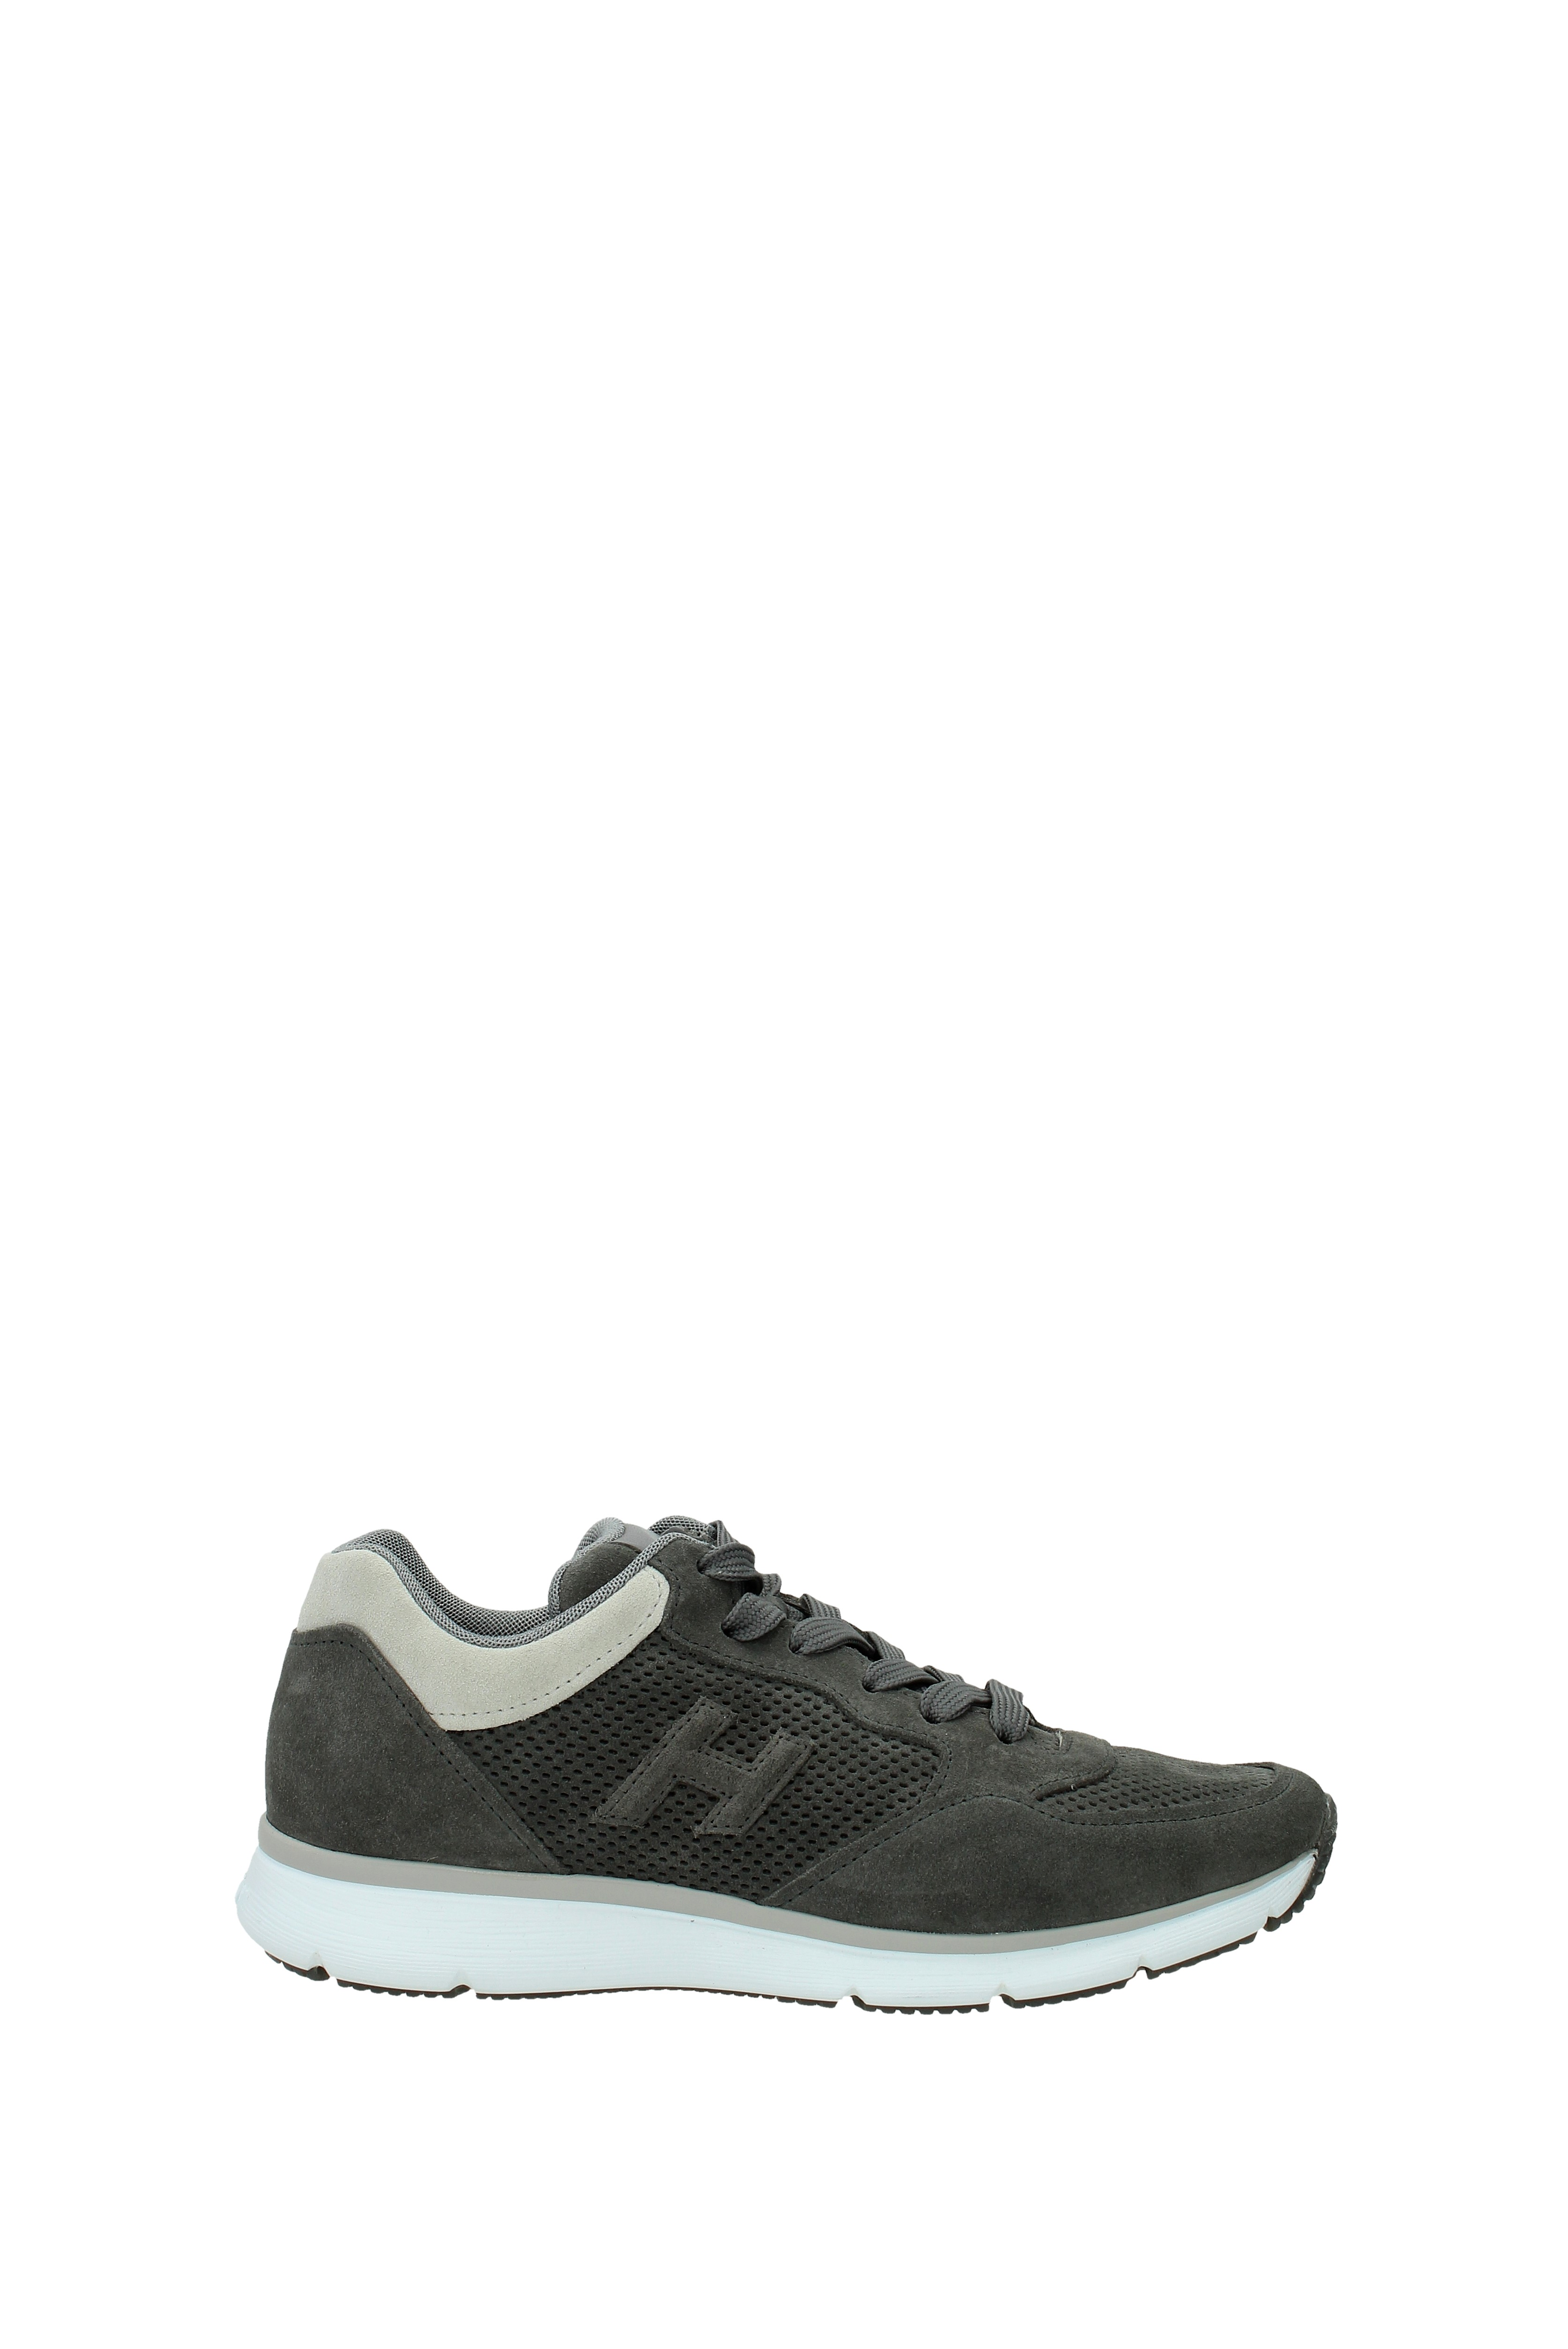 Adidas vs Pace Gris Homme Chaussures Baskets Gris Pace Retro Baskets Loisirs DB0143 Neuf bd8a4a